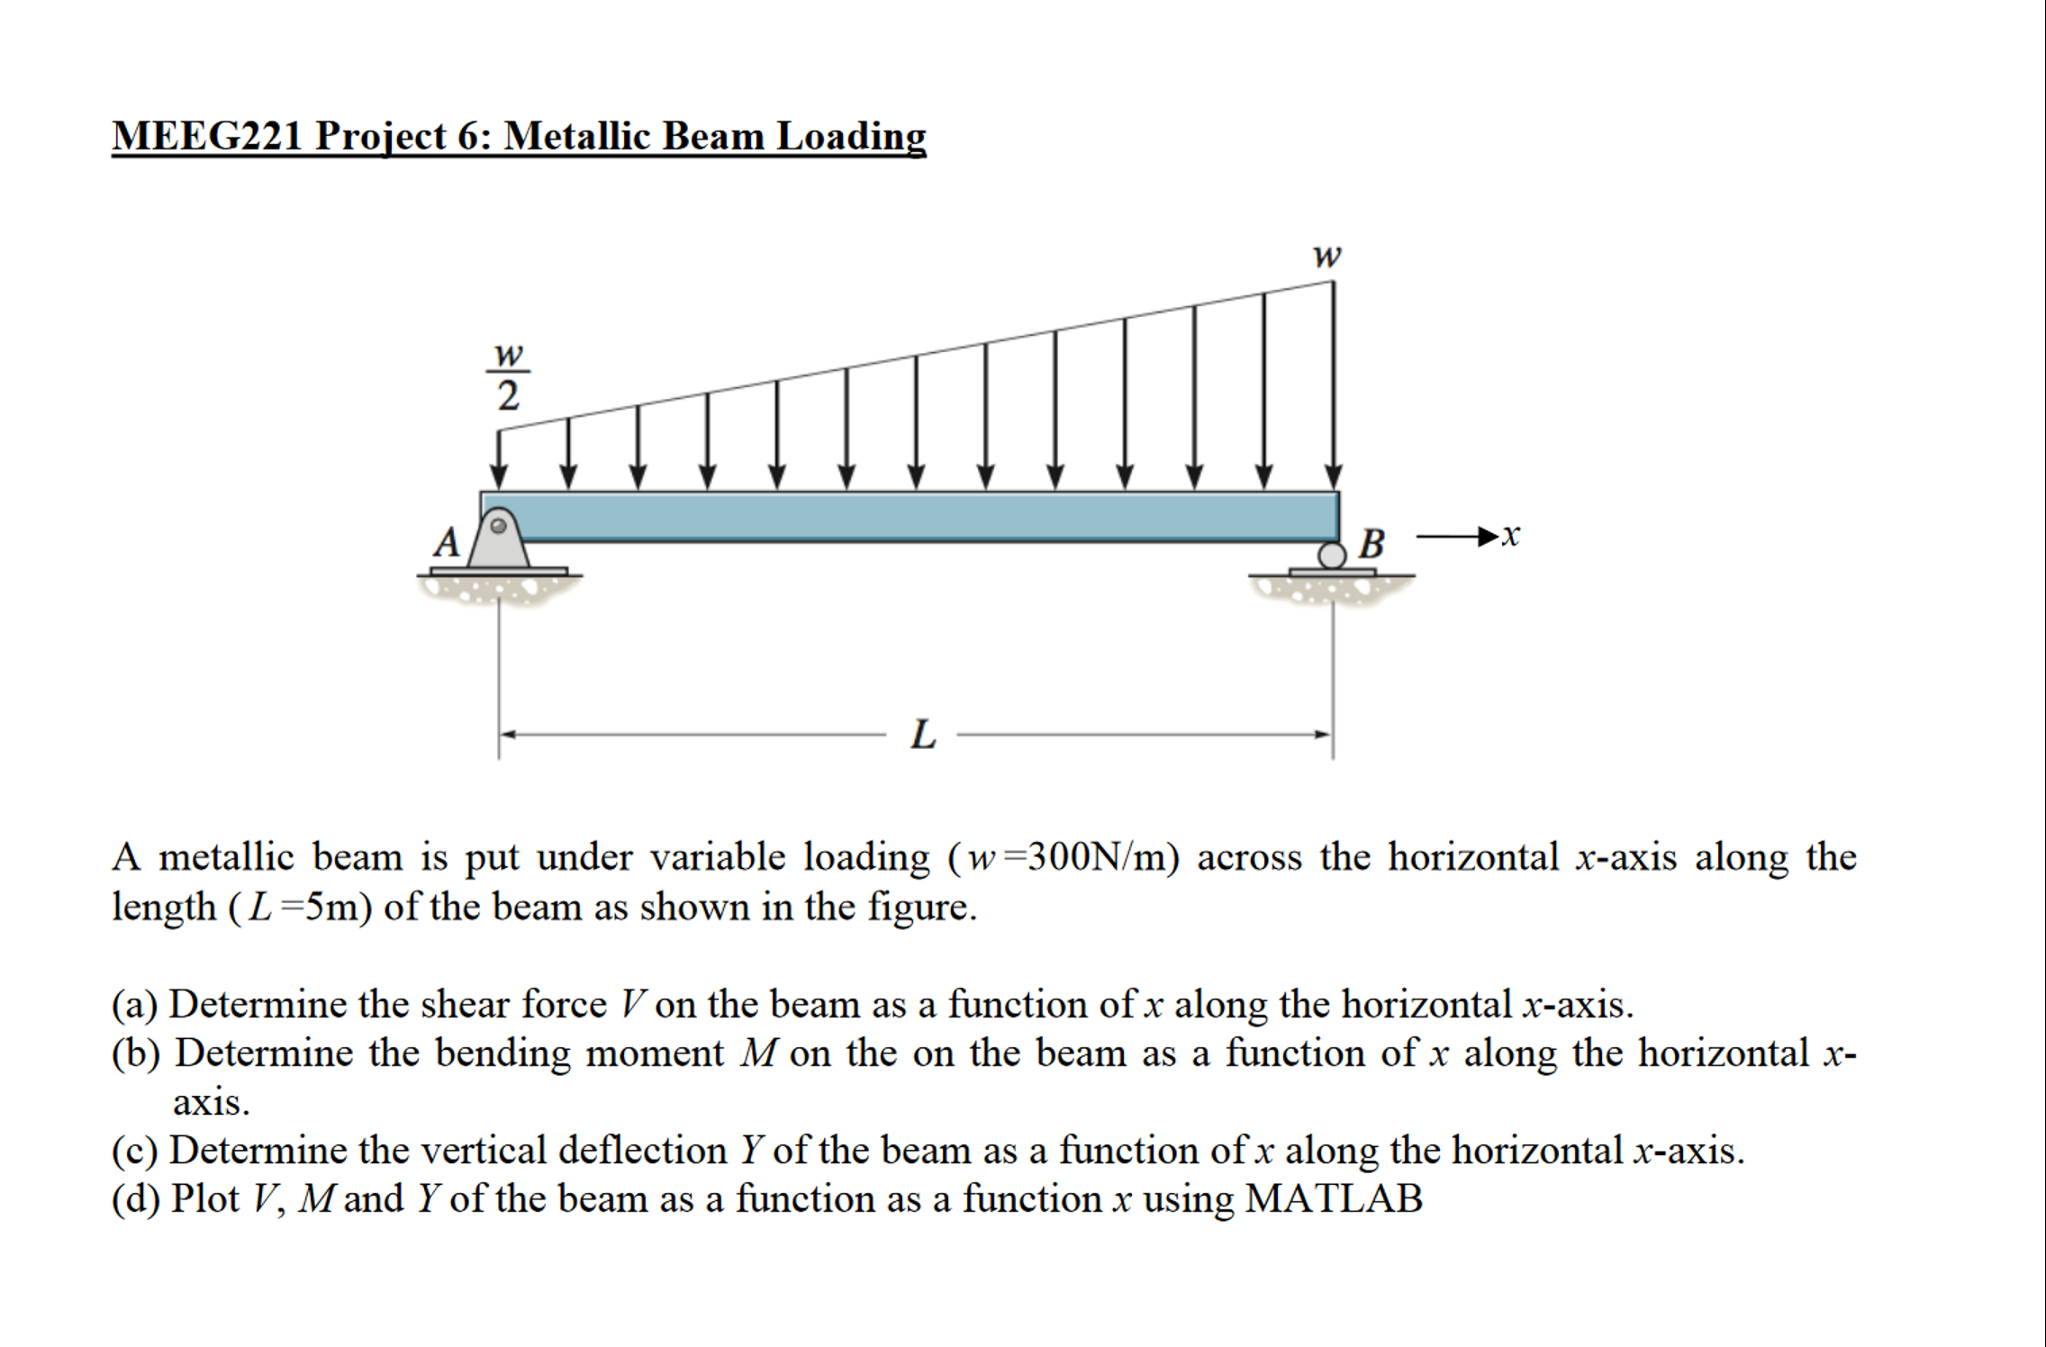 Solved: I Need This Question To Be Answered In MATLAB, Who